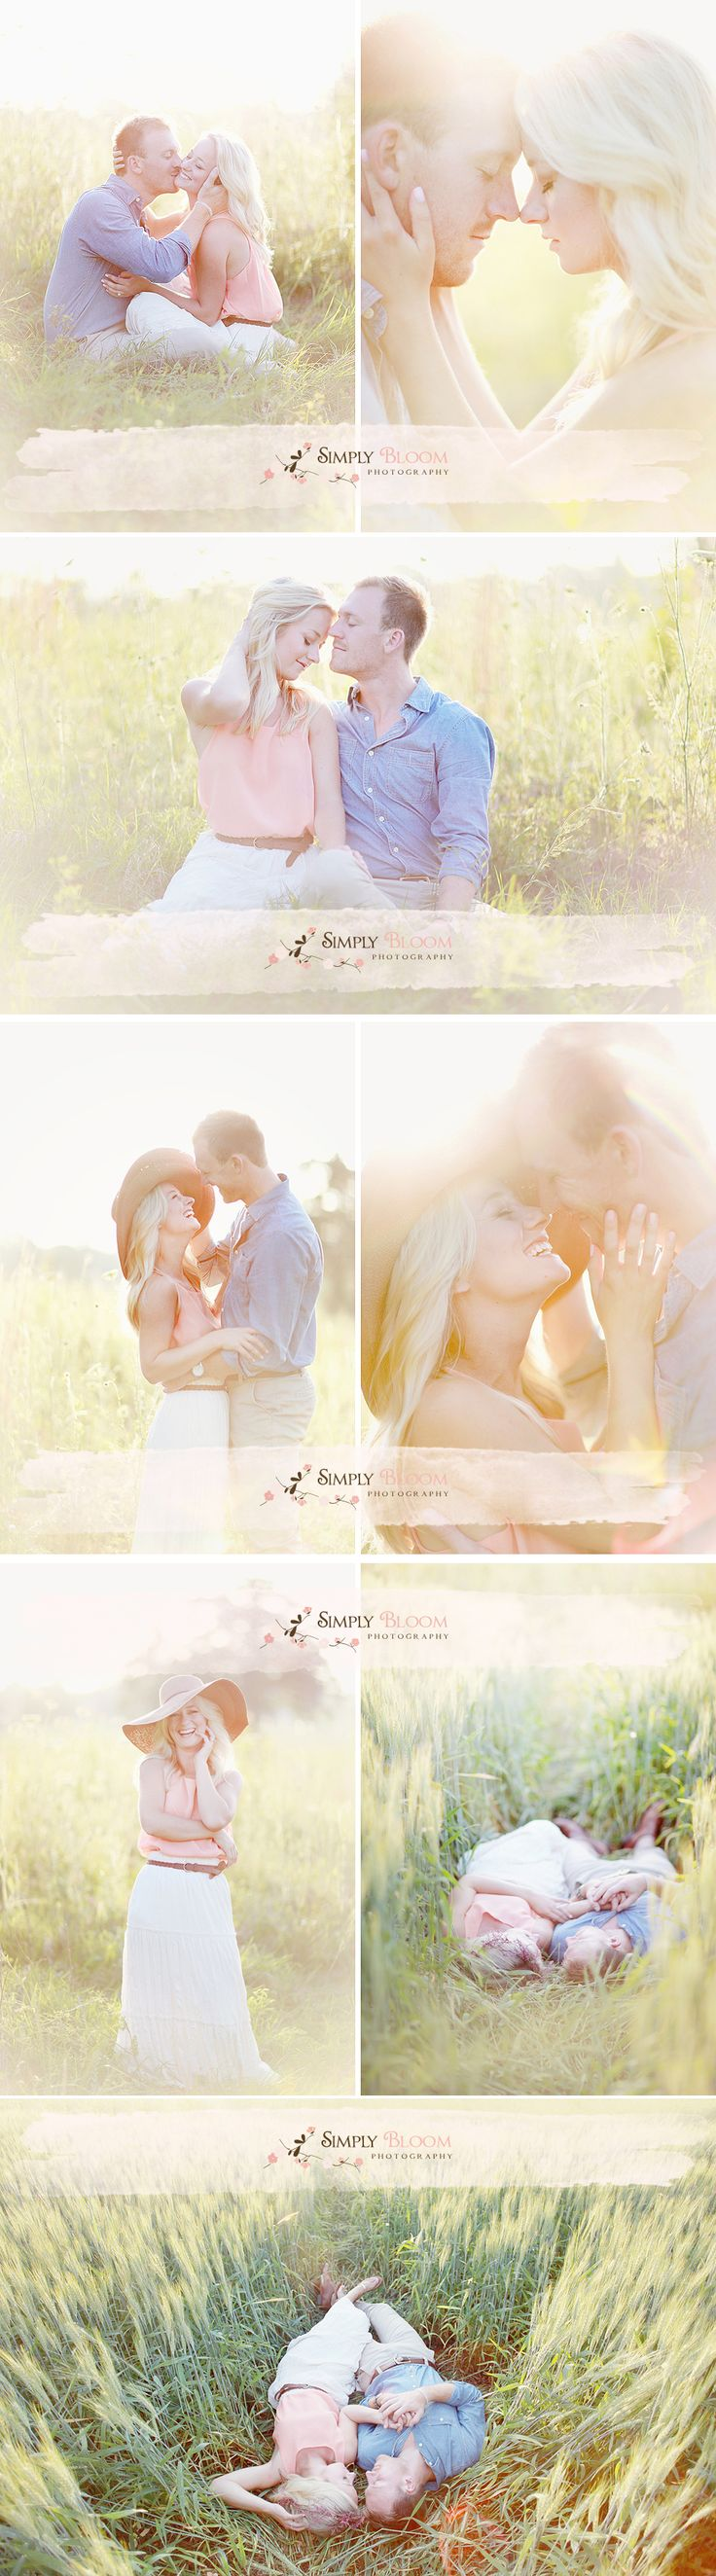 Huntsville, AL Engagement Photography » Simply Bloom Photography | Destination Weddings | Santa Barbara | New York | Los Angeles | Huntsville